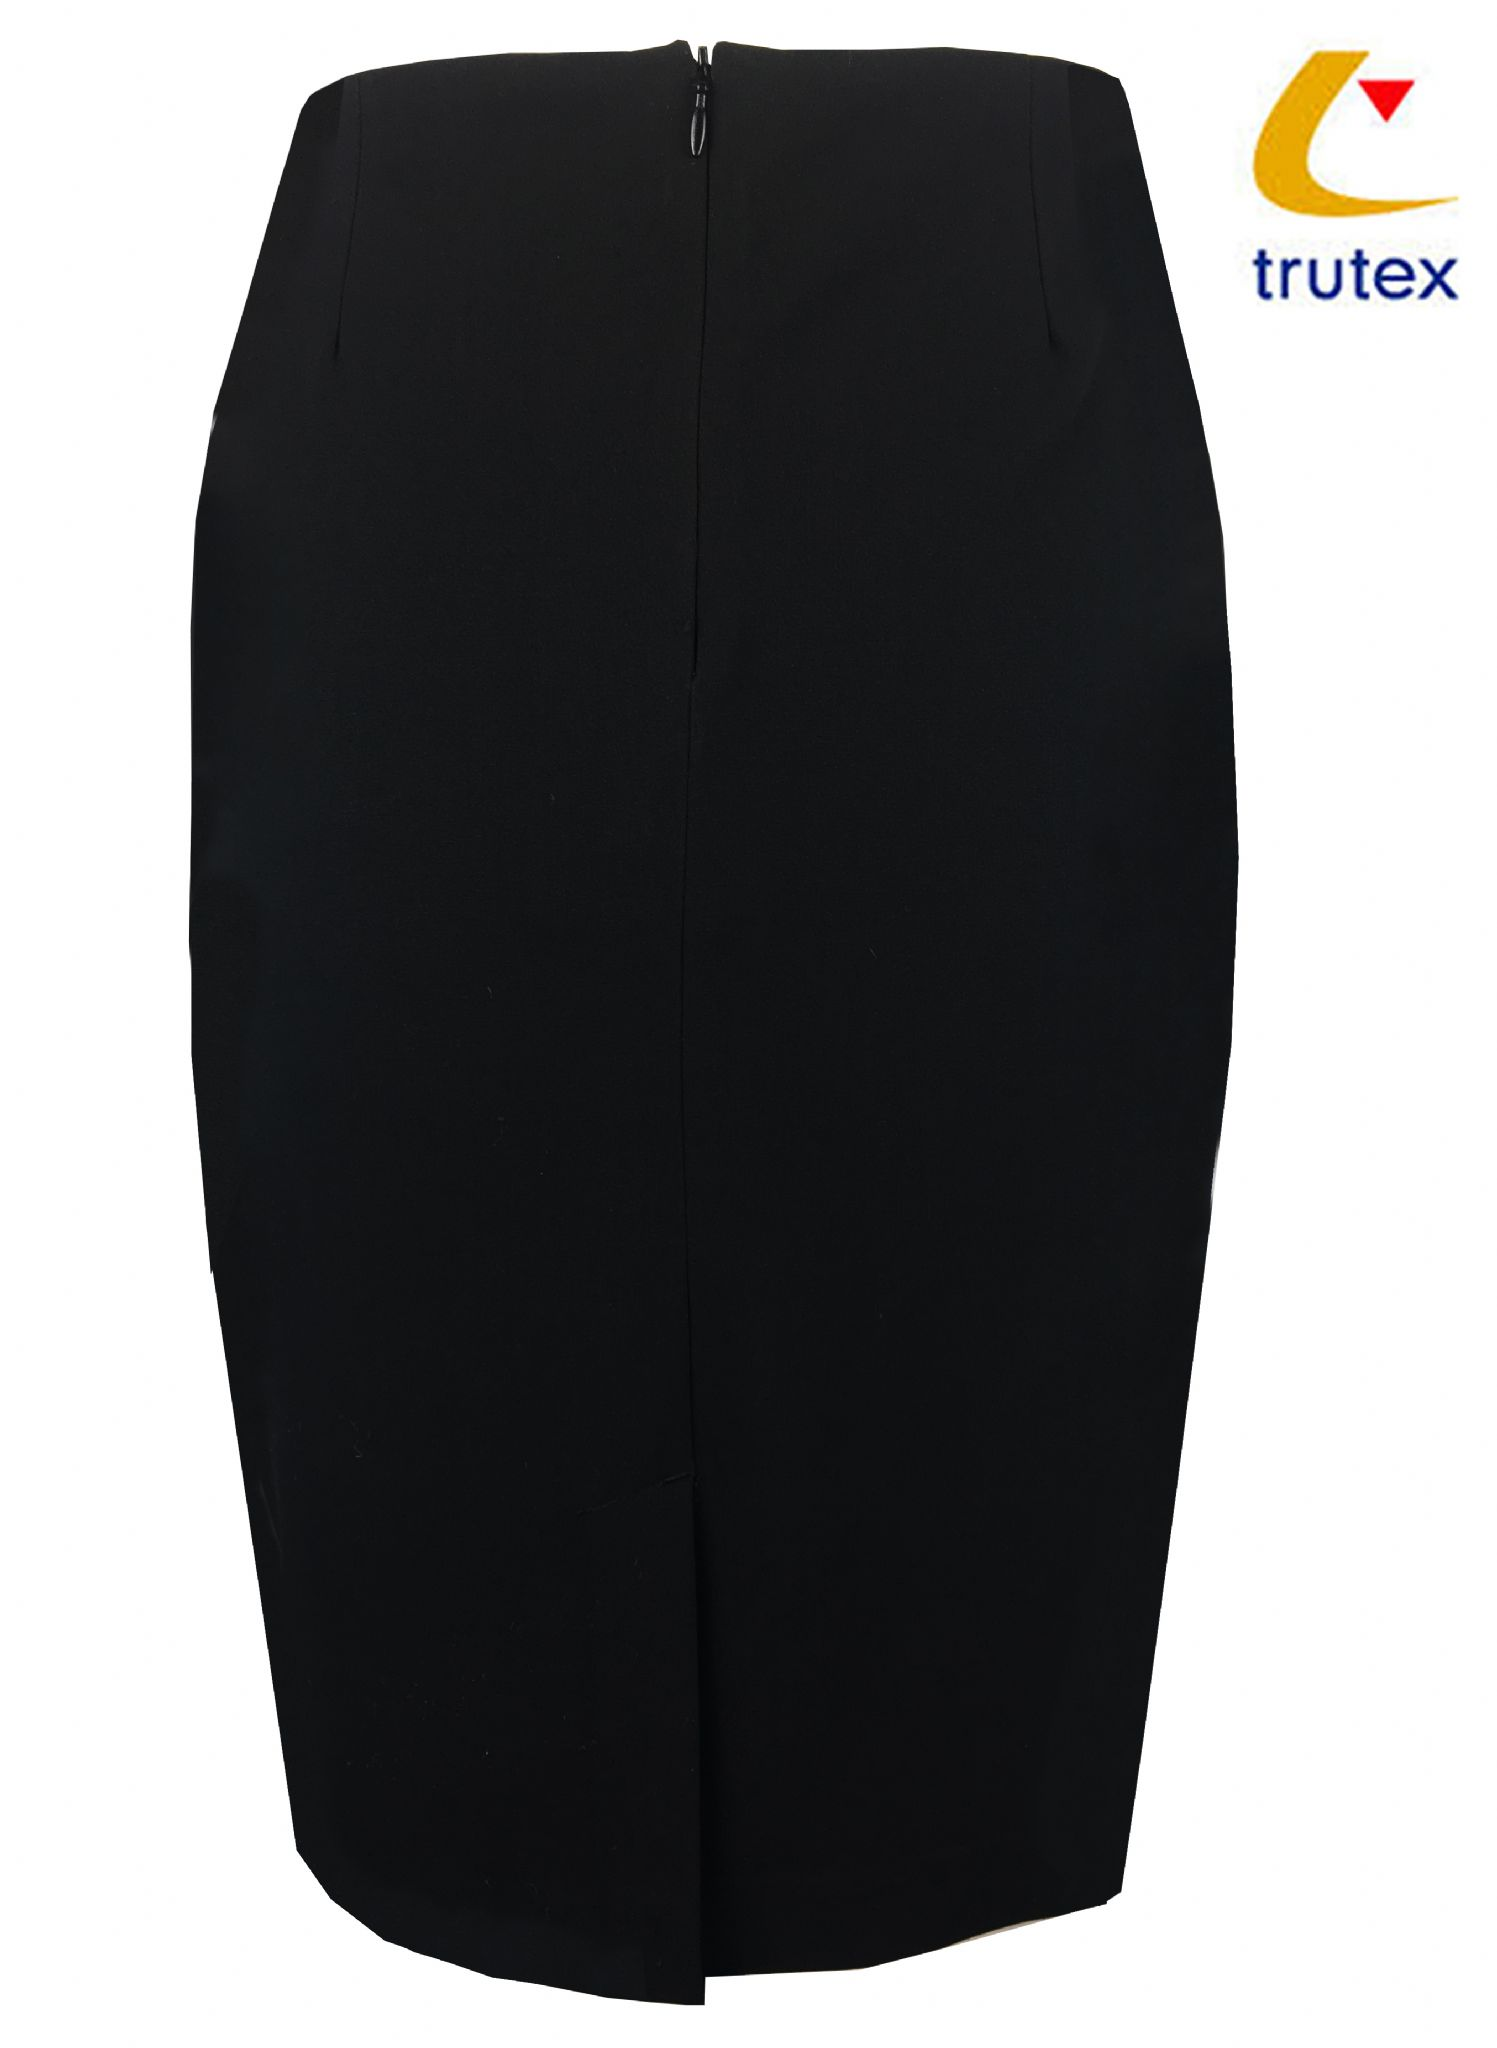 Girls Black Pencil Skirt VERY GENEROUS FIT CHECK SIZE CHARTS 67cddb7a0